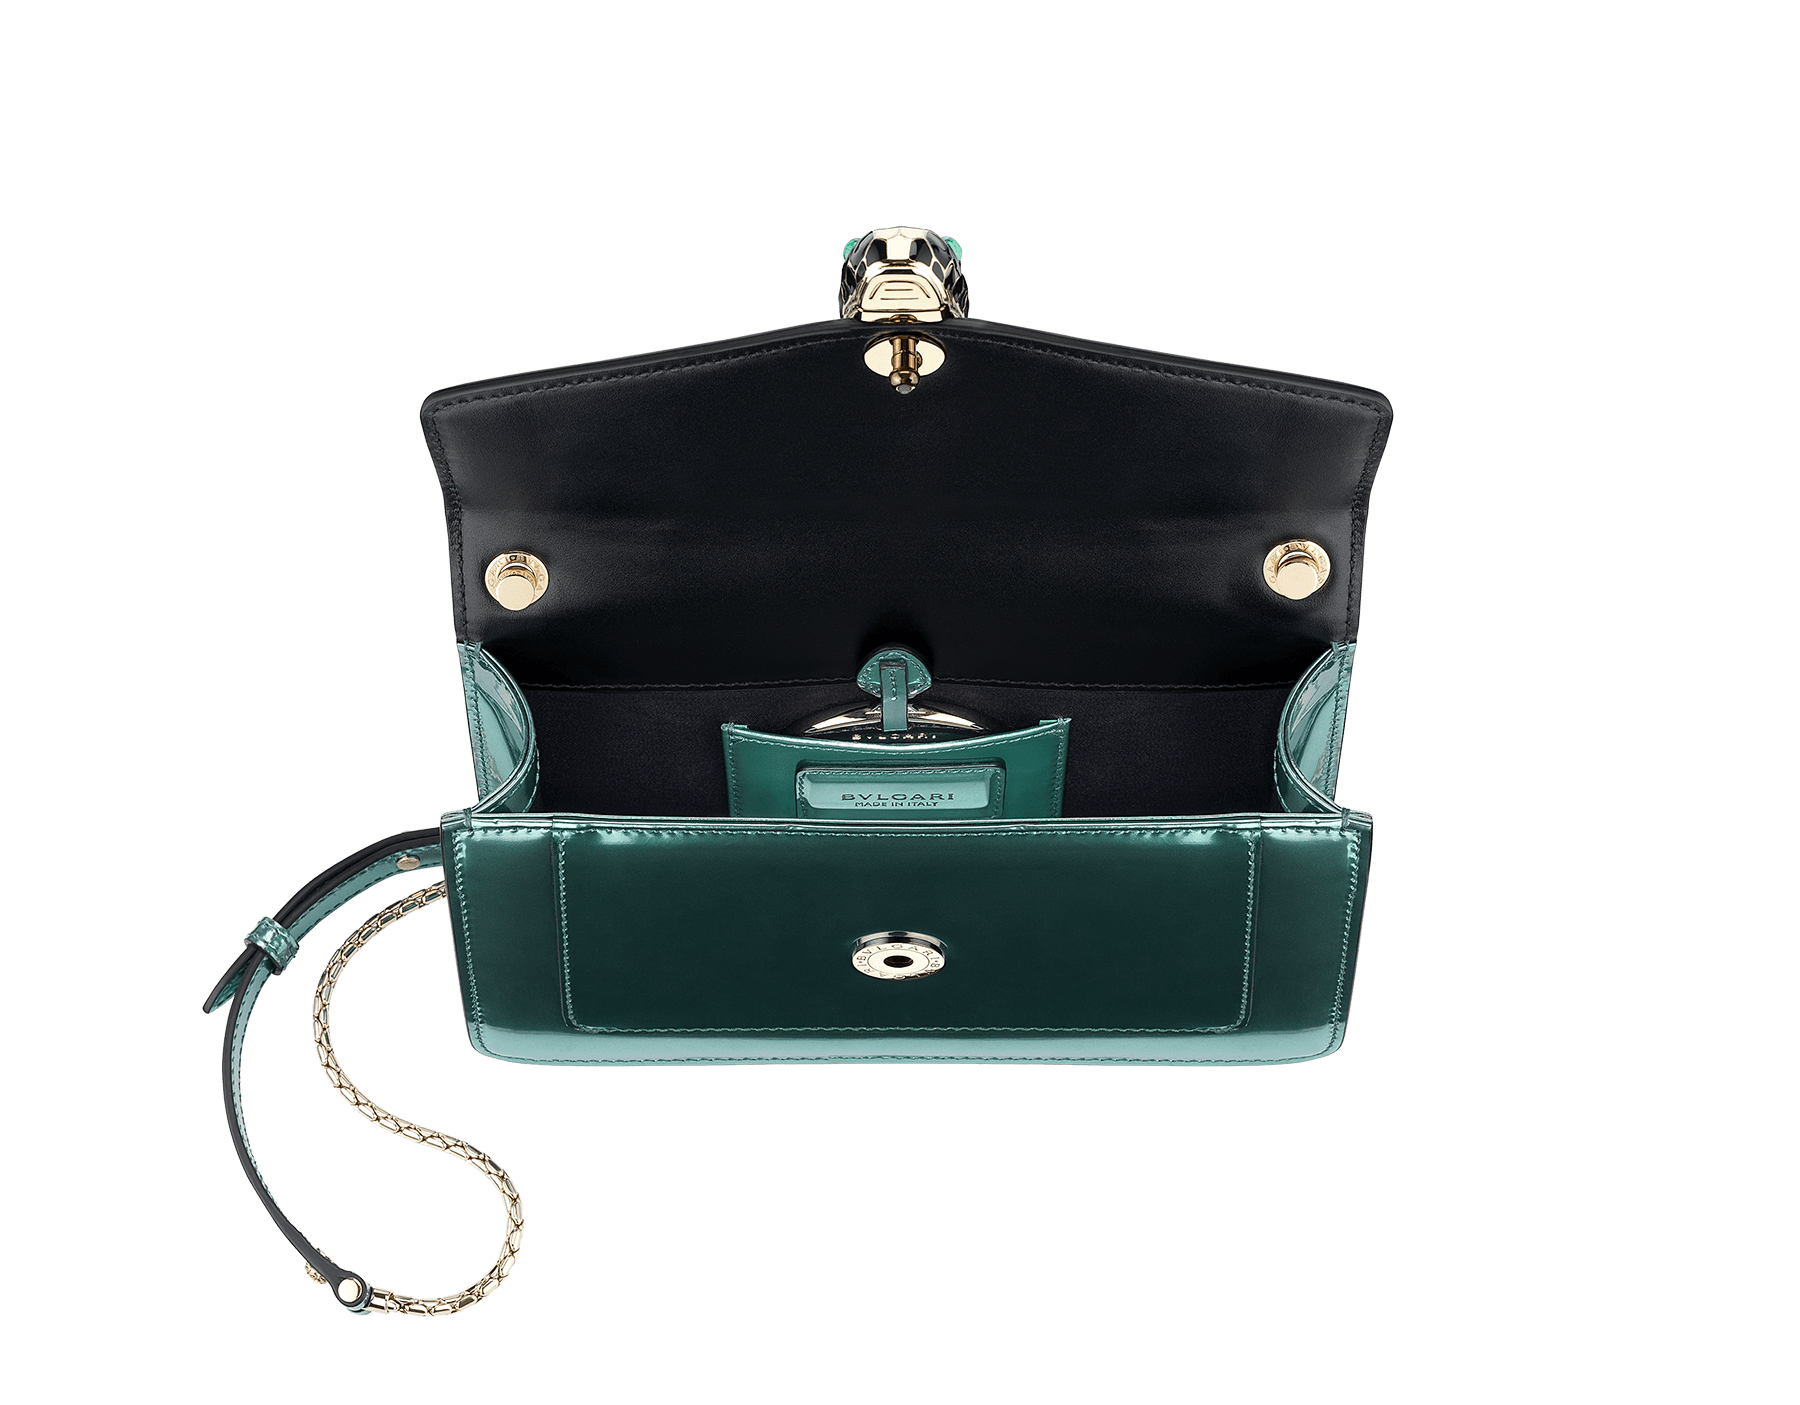 """""""Serpenti Forever """" crossbody bag in glacier turquoise brushed metallic calf leather. Iconic snakehead closure in light gold plated brass enriched with black and white enamel and green malachite eyes. 287048 image 2"""